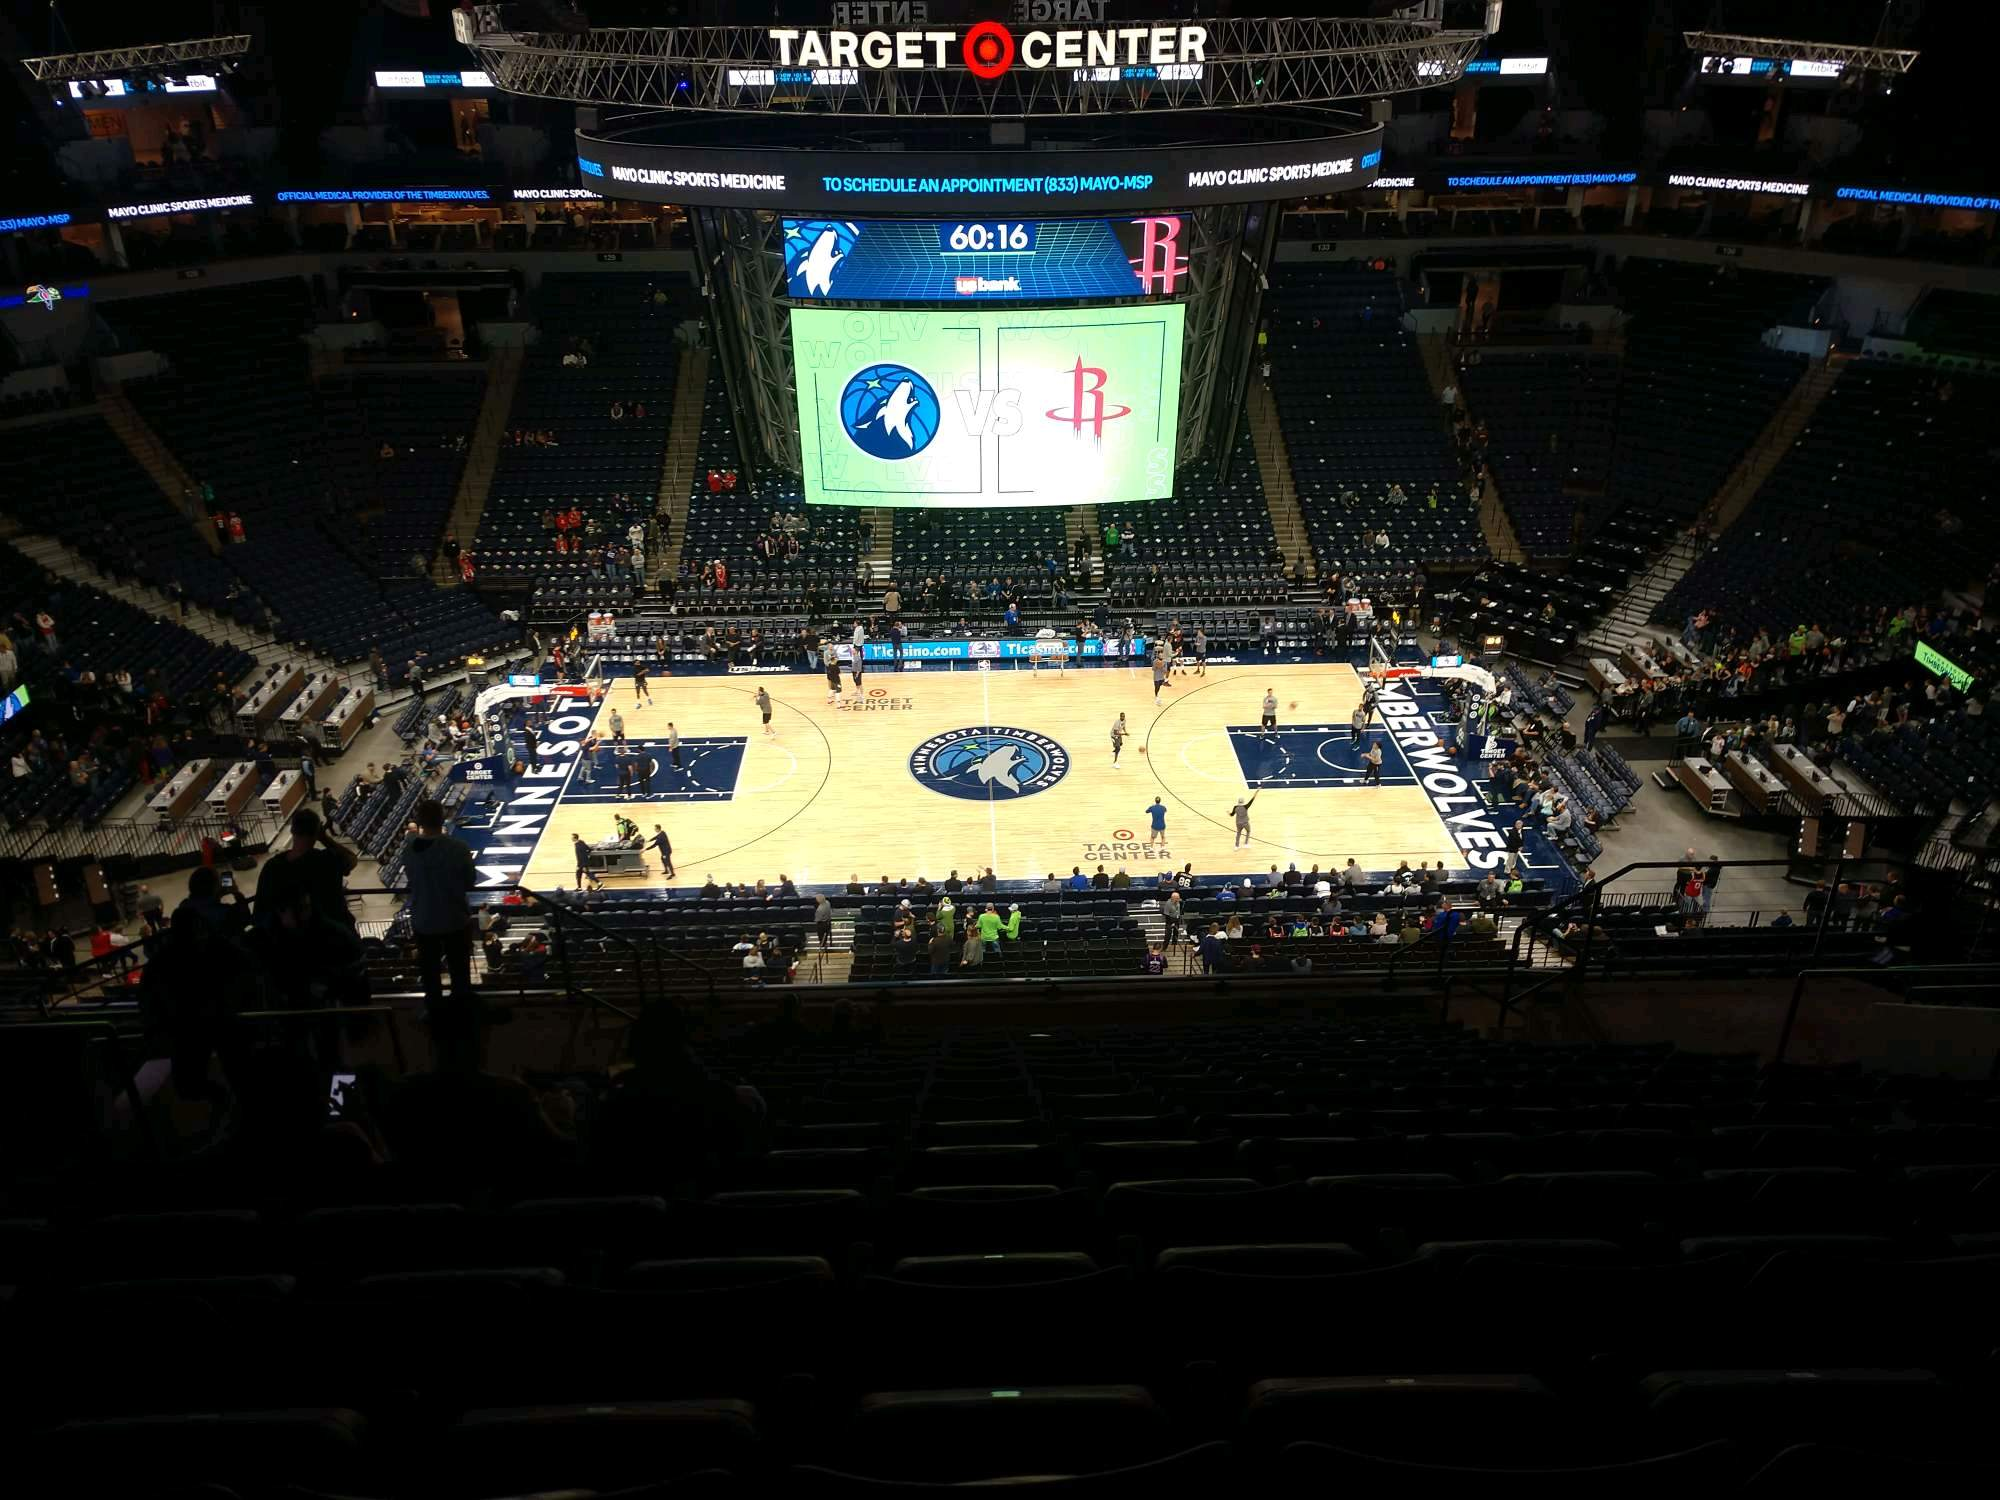 Target Center Section 211 Row R Seat 9